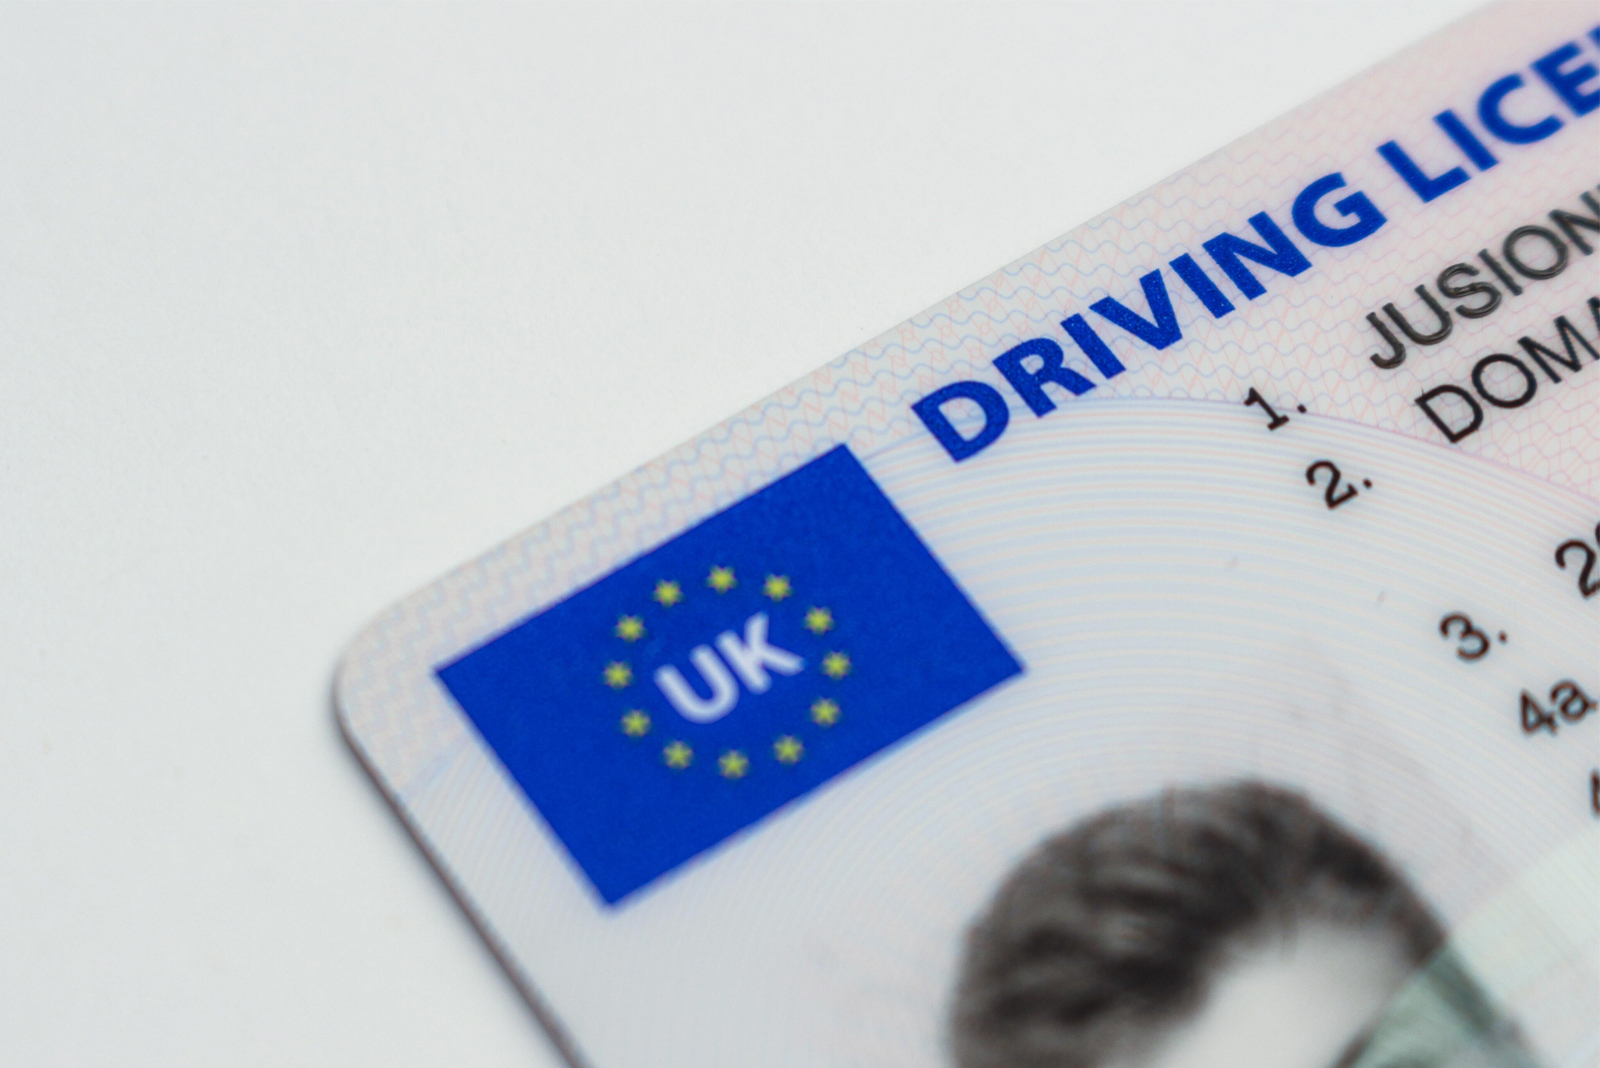 Honest John investigates the current wait time for a practical driving test